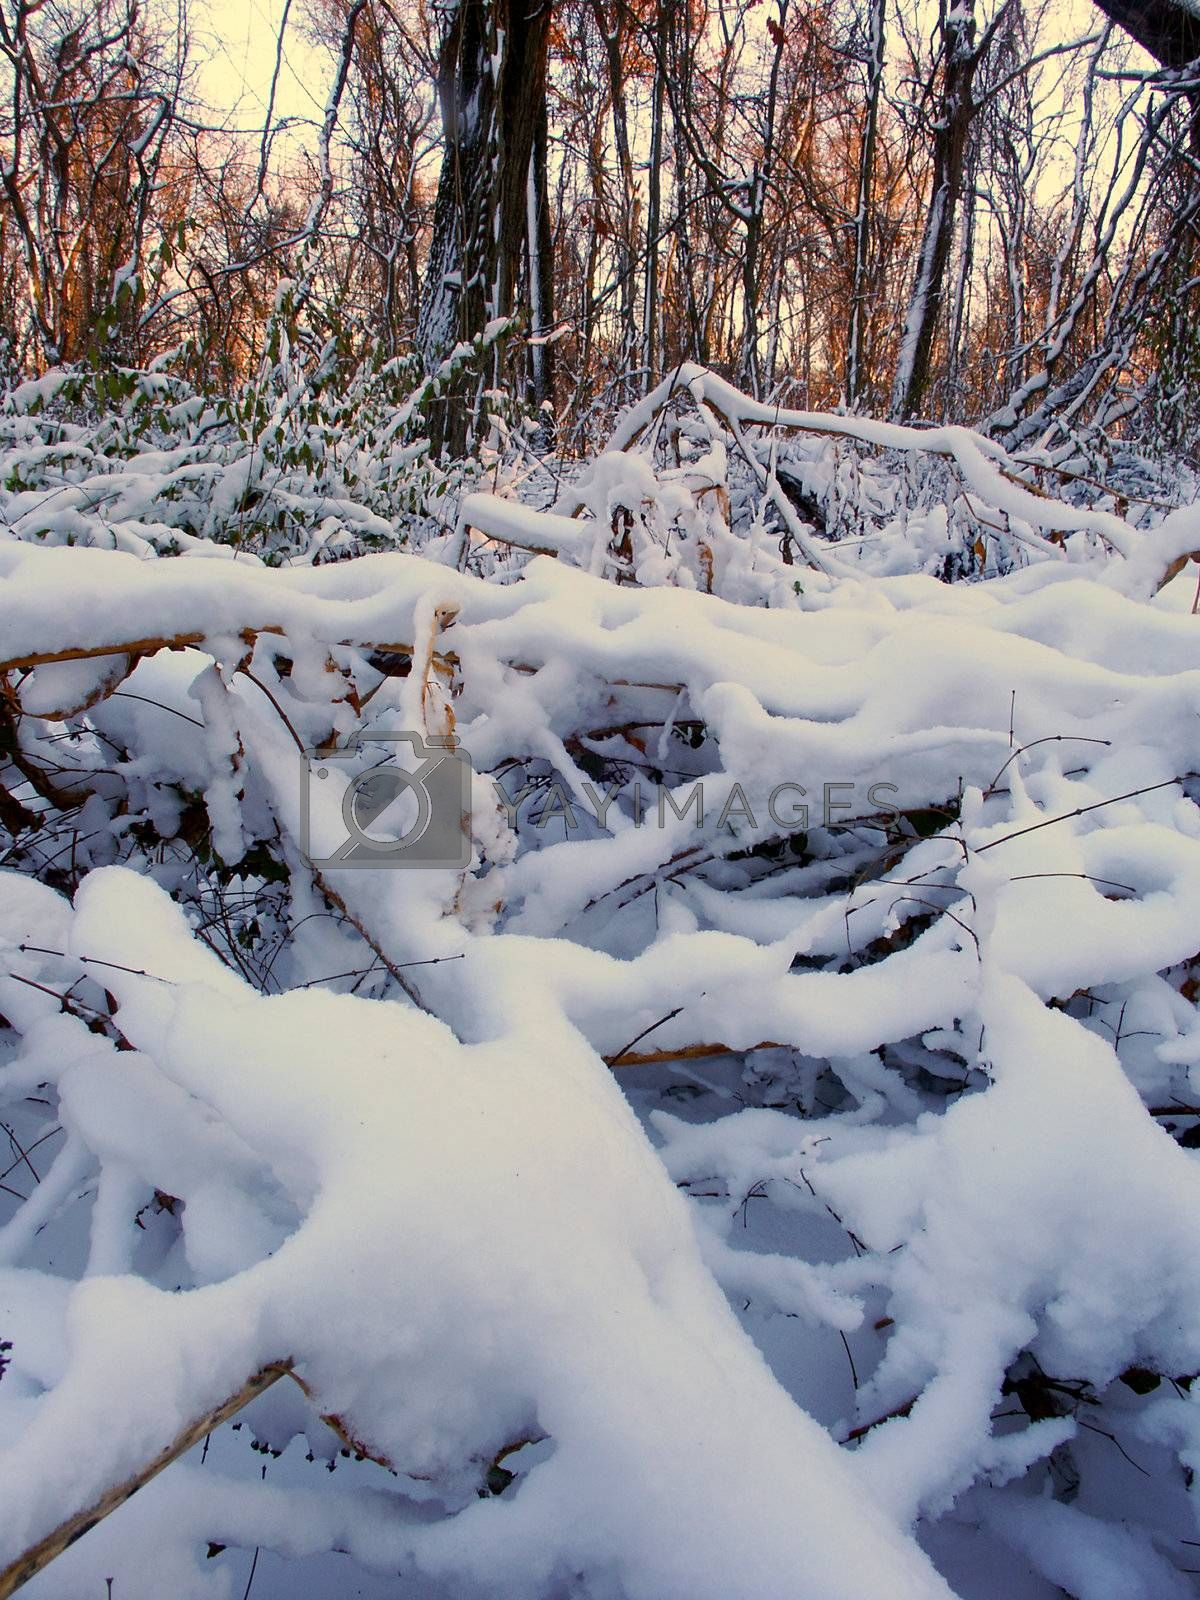 Snow covered forest scenery of Allerton Park in central Illinois.